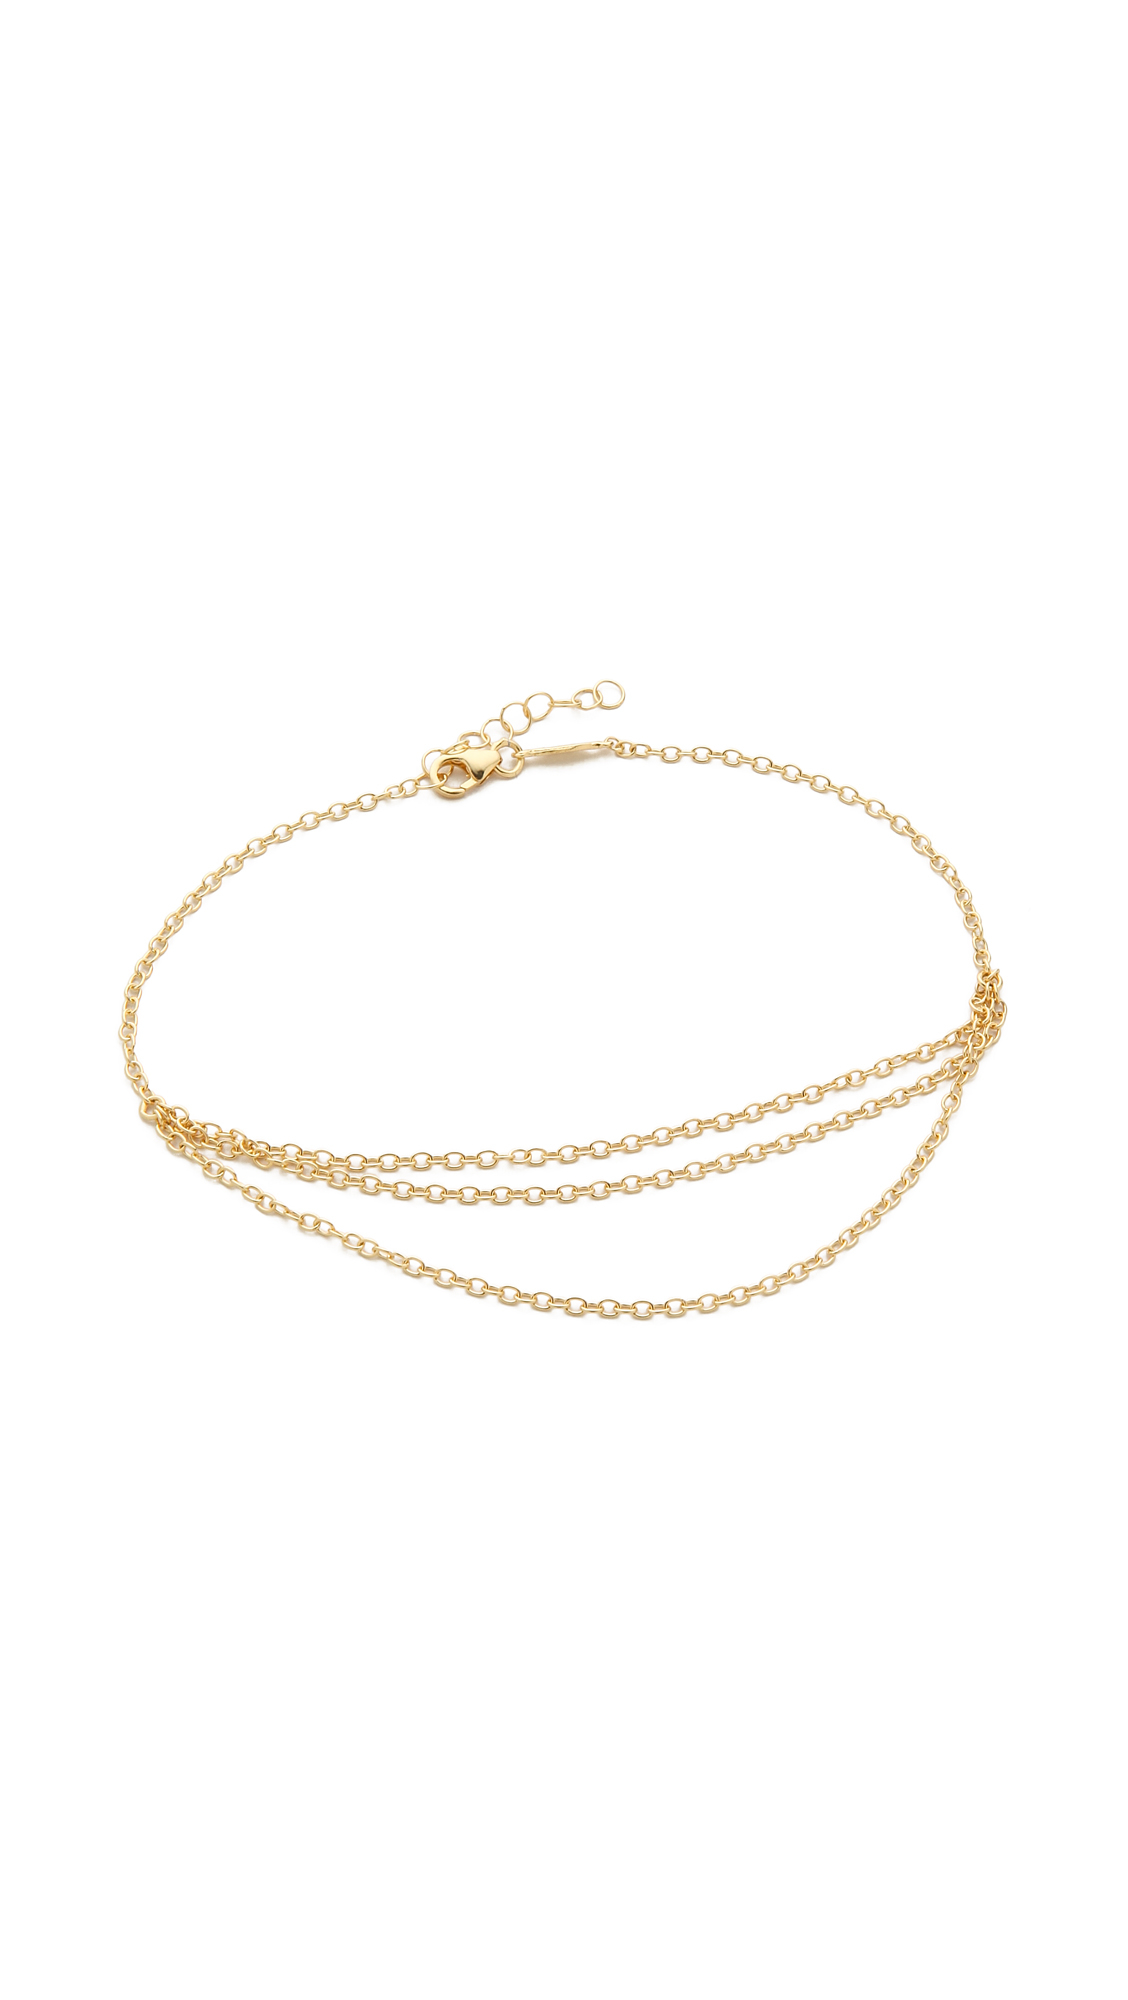 anklet inca pre products karat view closet bracelet replicas gold columbian straight bijoux